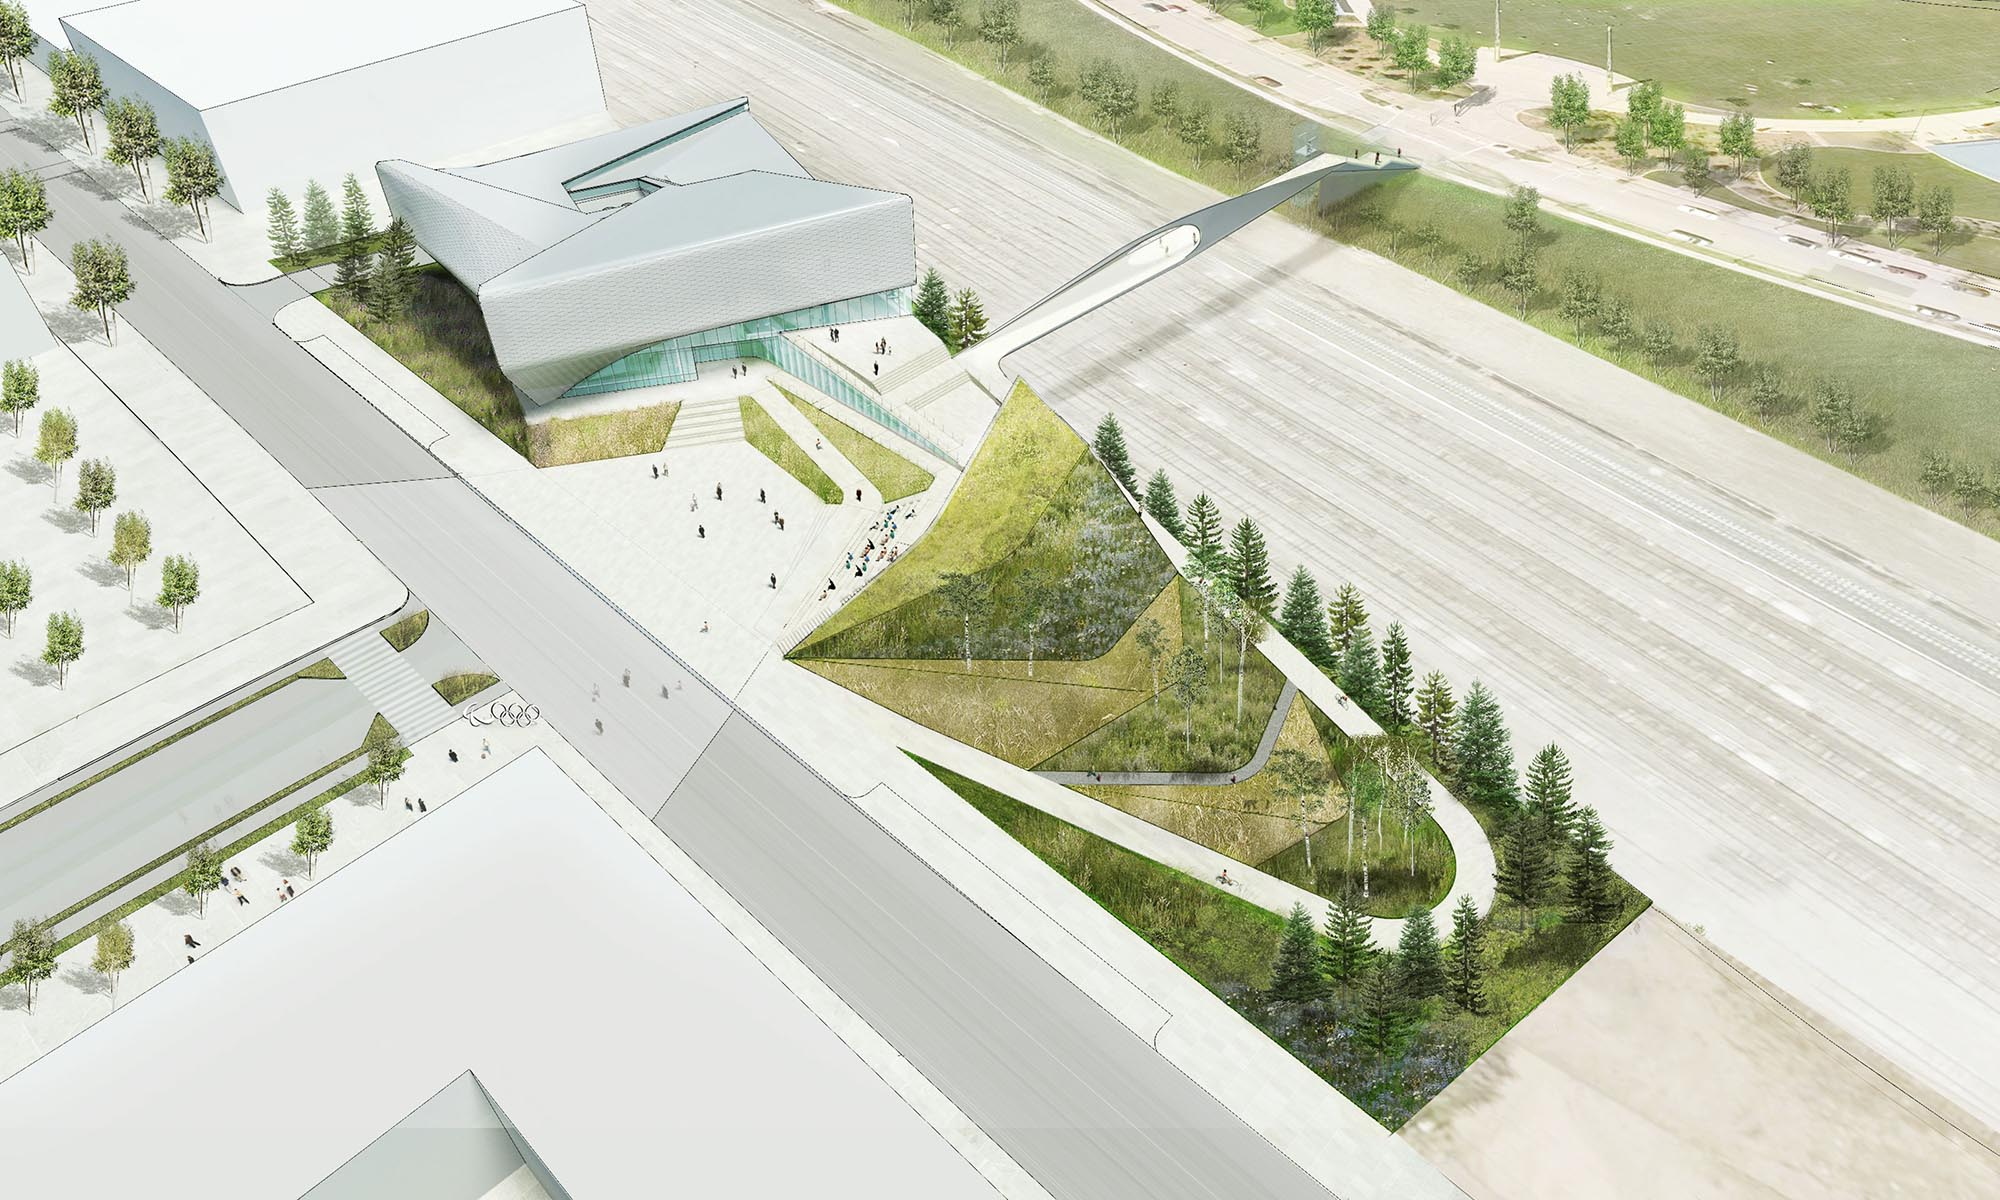 mm_United States Olympic Museum design by Diller Scofidio + Renfro _03